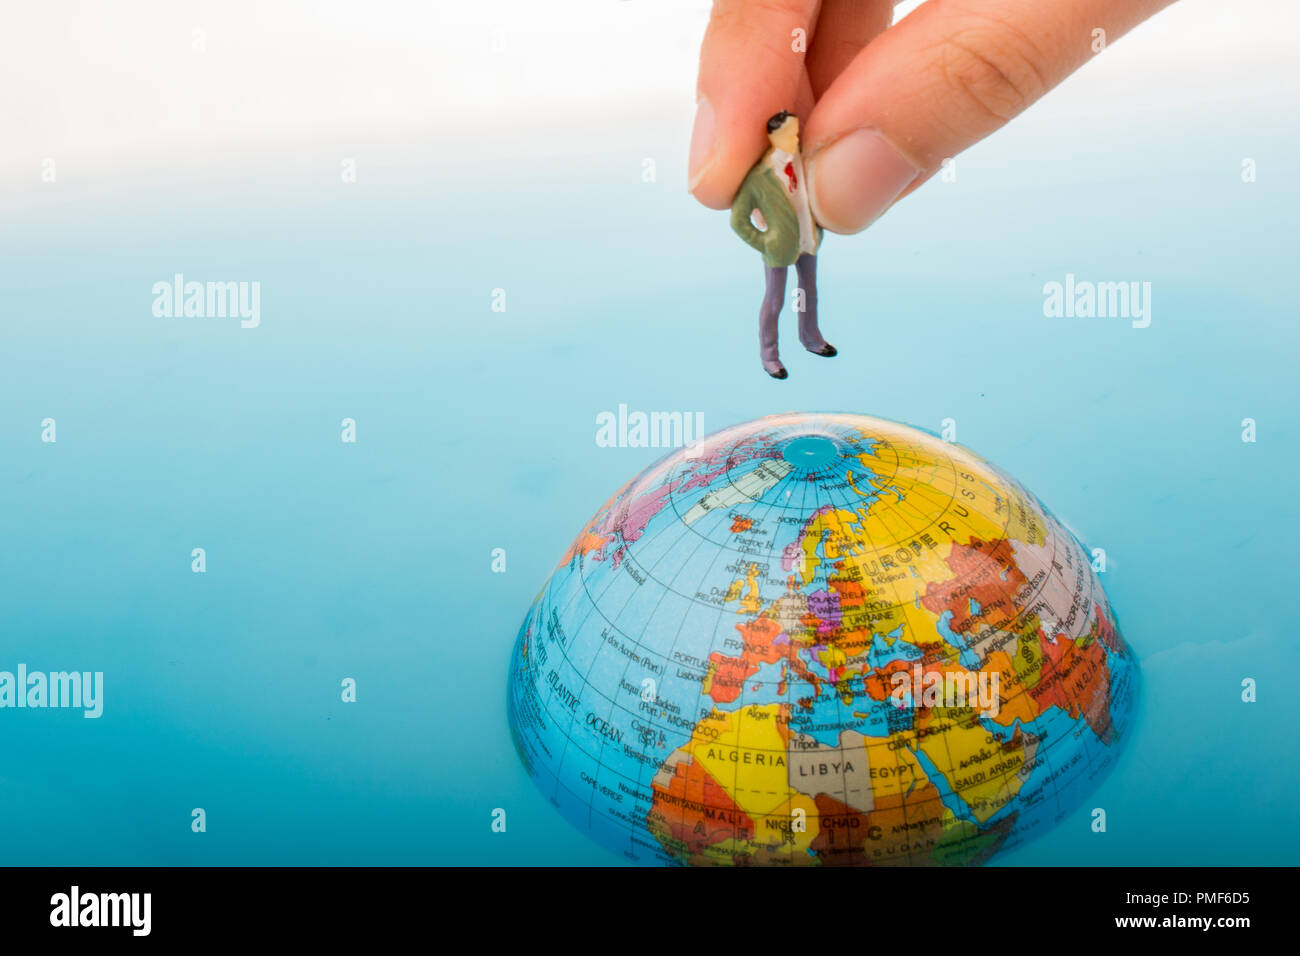 da8584622285 Hand holding a little figurine on the top of the globe in water ...